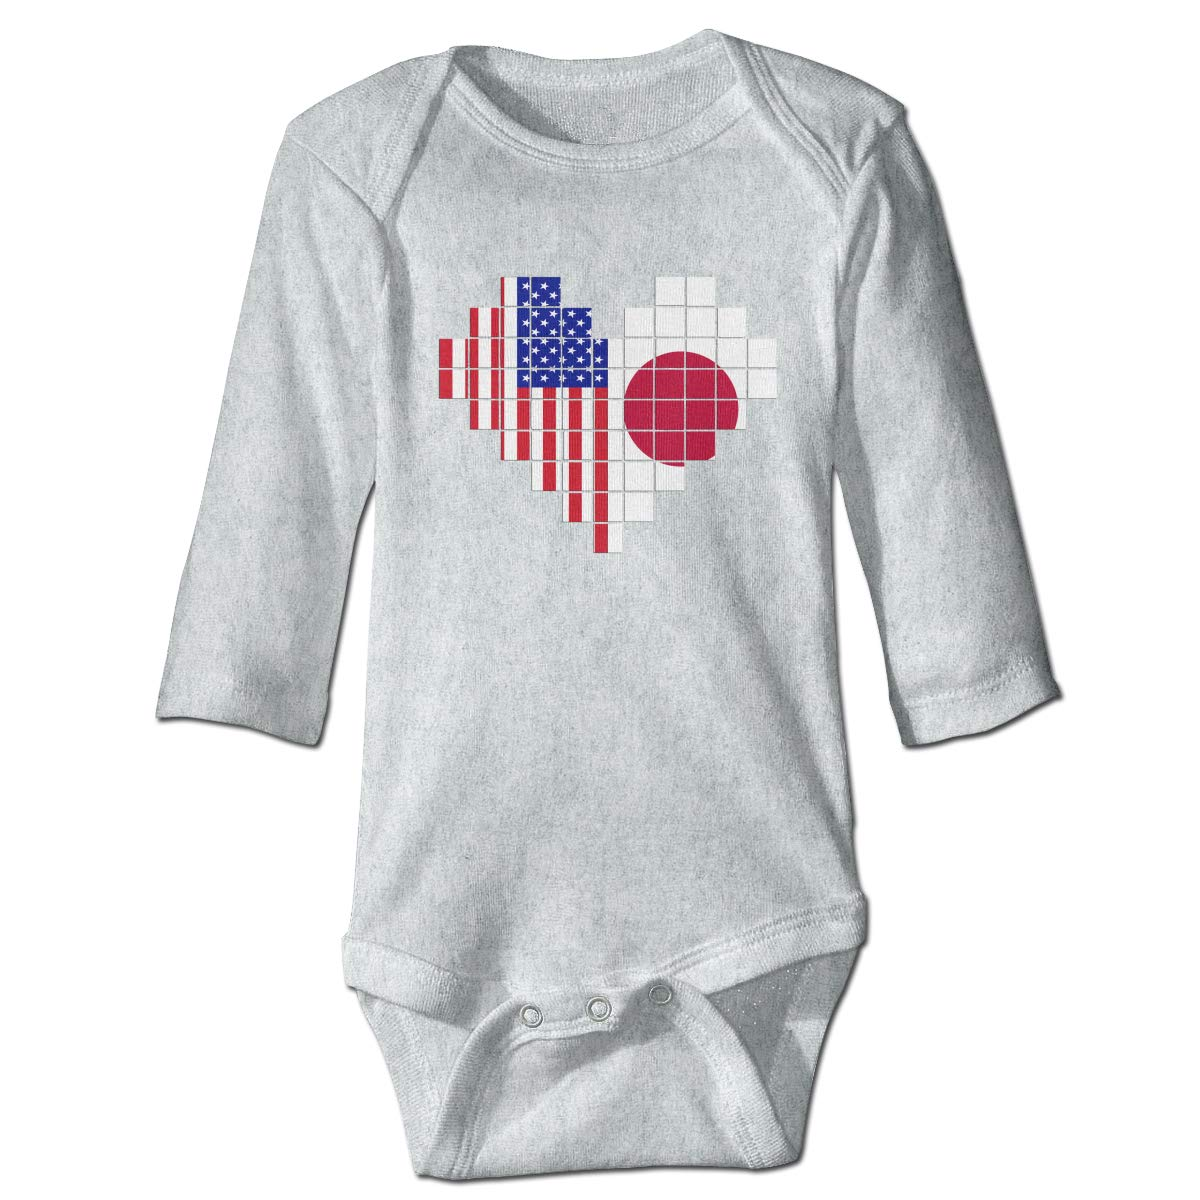 A14UBP Baby Infant Toddler Long Sleeve Romper Bodysuit American Flag Japan Flag Puzzle Heart Playsuit Outfit Clothes